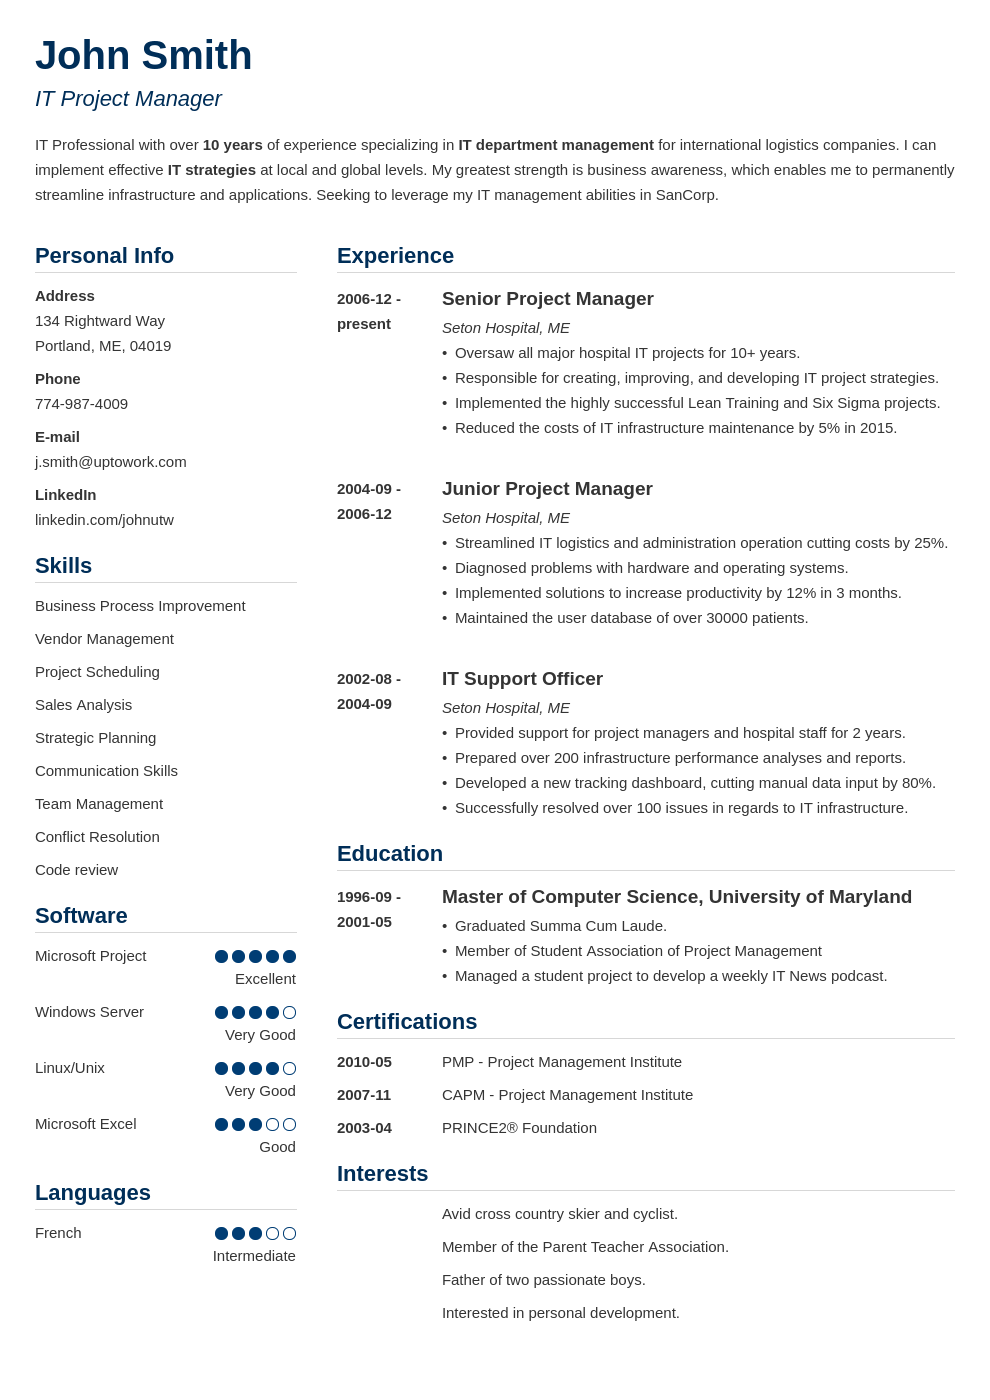 templete for resume - Demire.agdiffusion.com